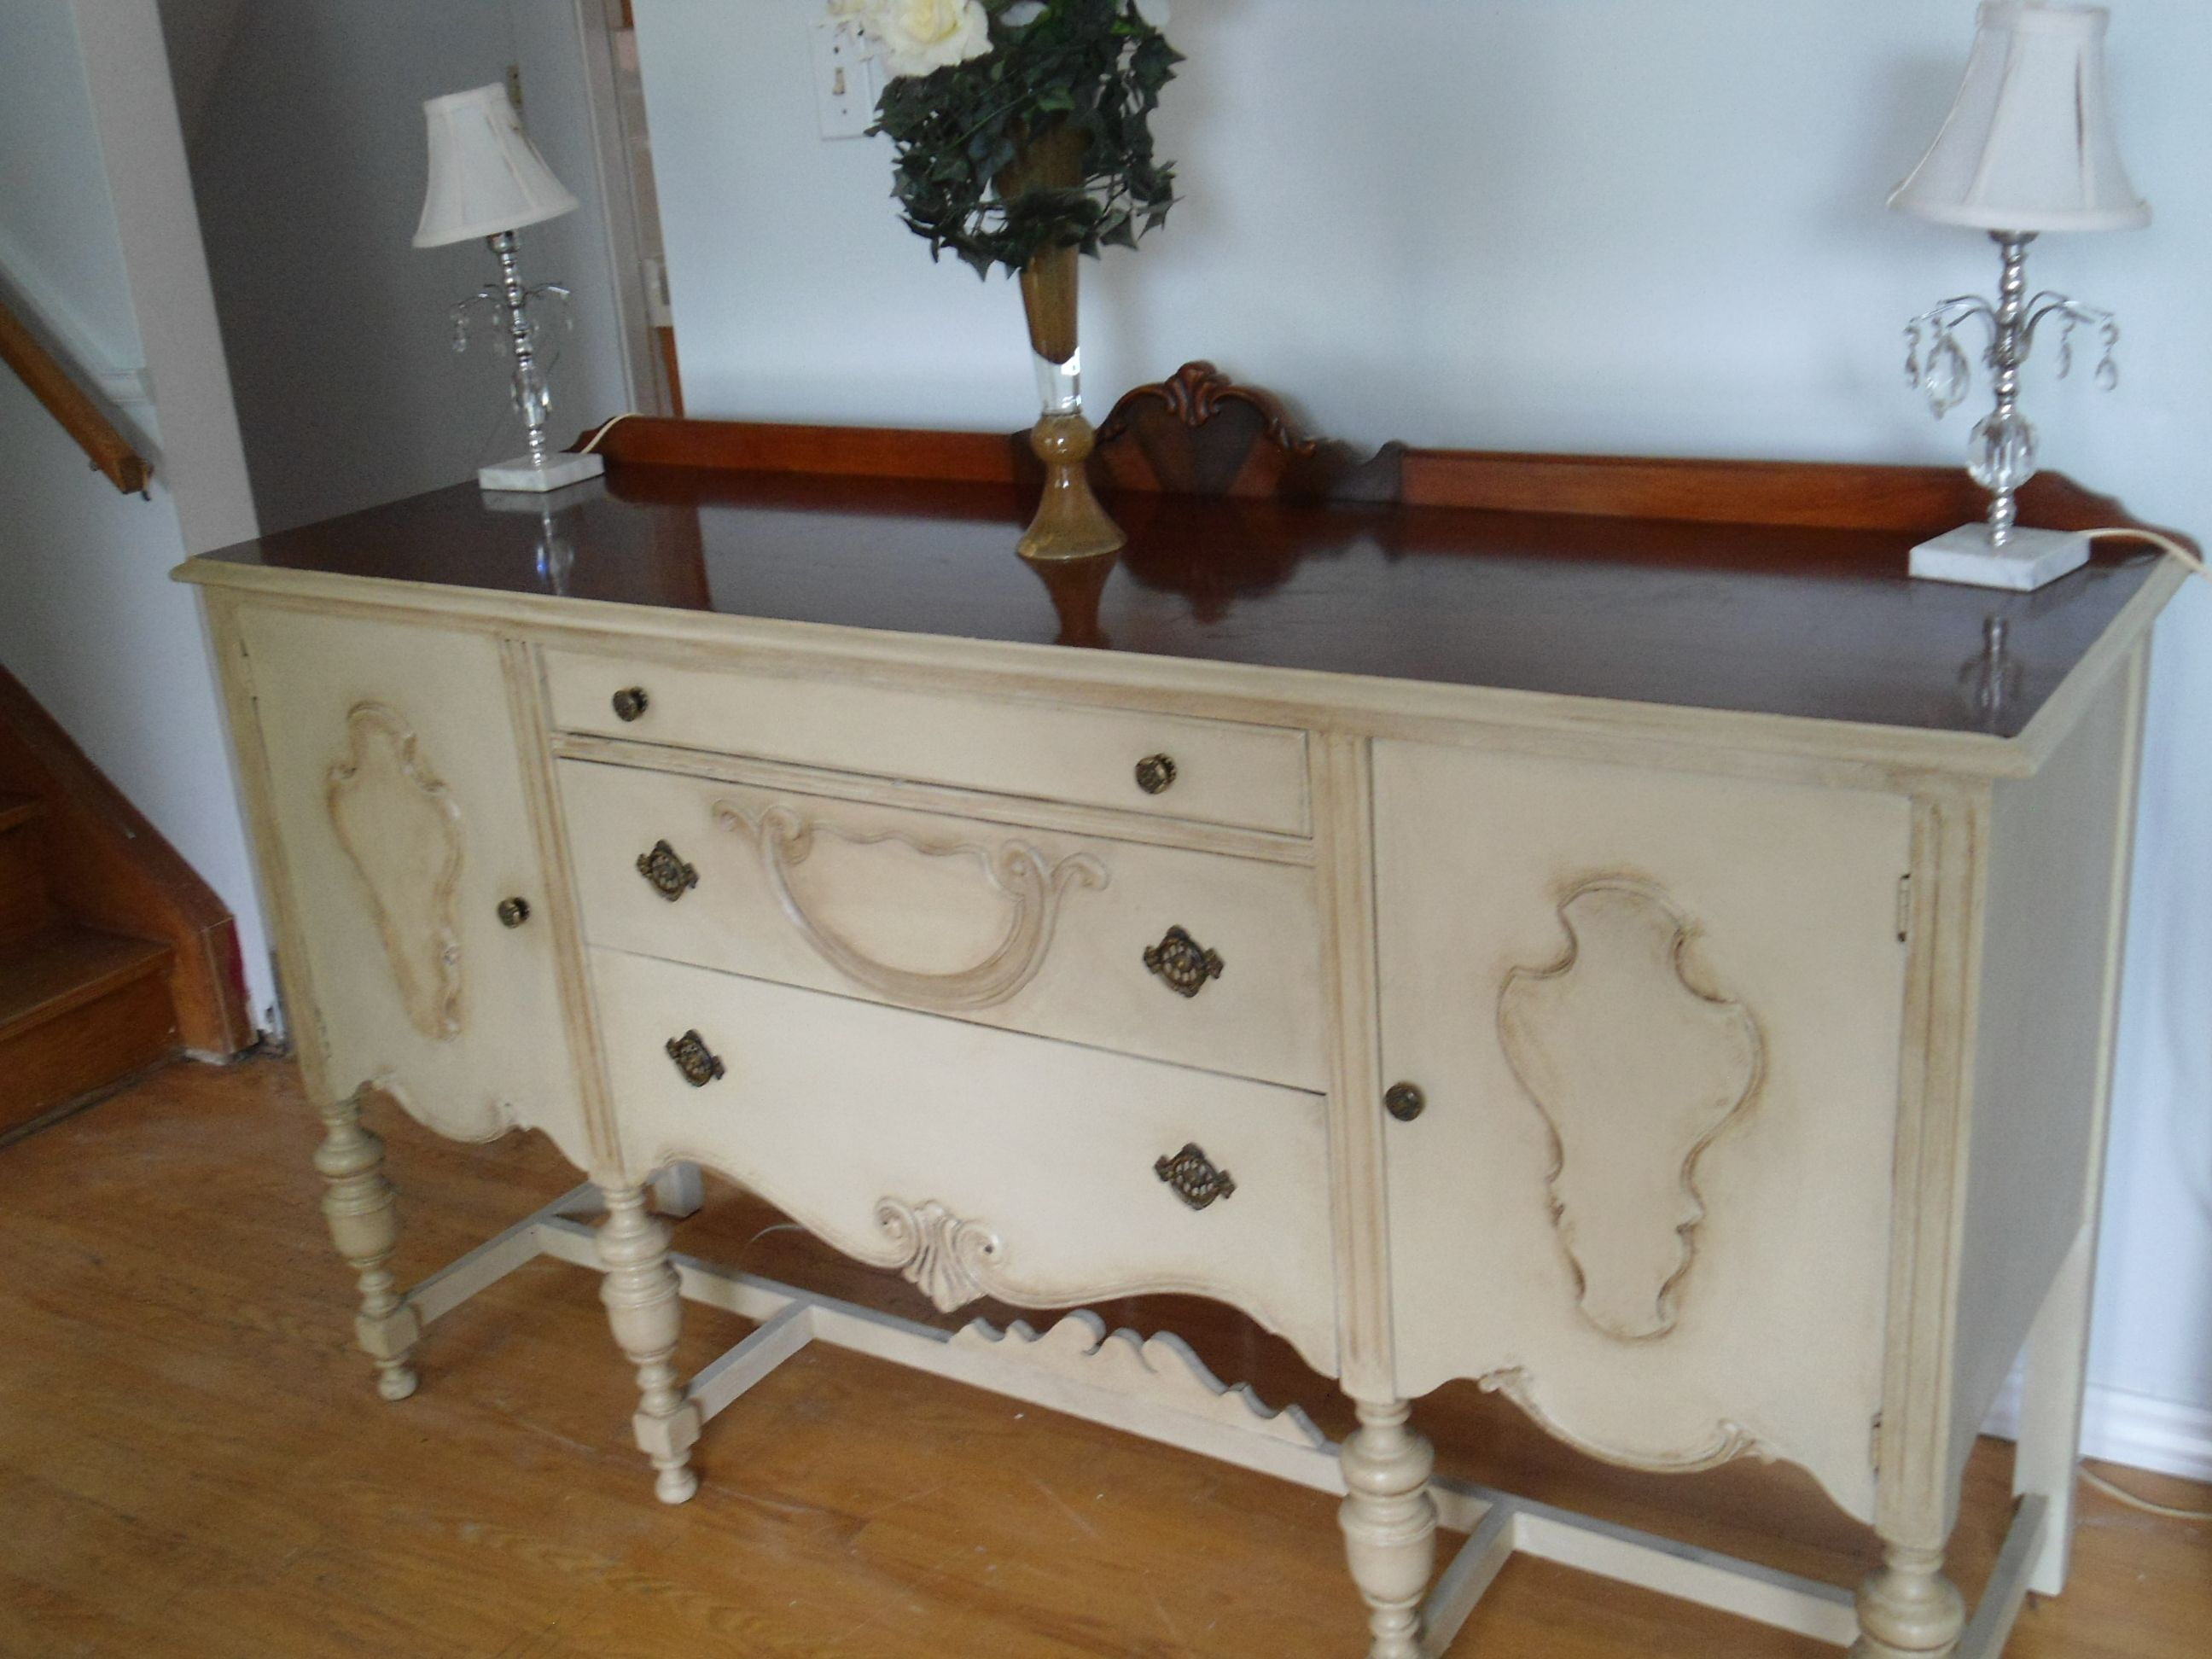 Peachy French Country Buffet Console Or Sideboard Finished With Download Free Architecture Designs Scobabritishbridgeorg